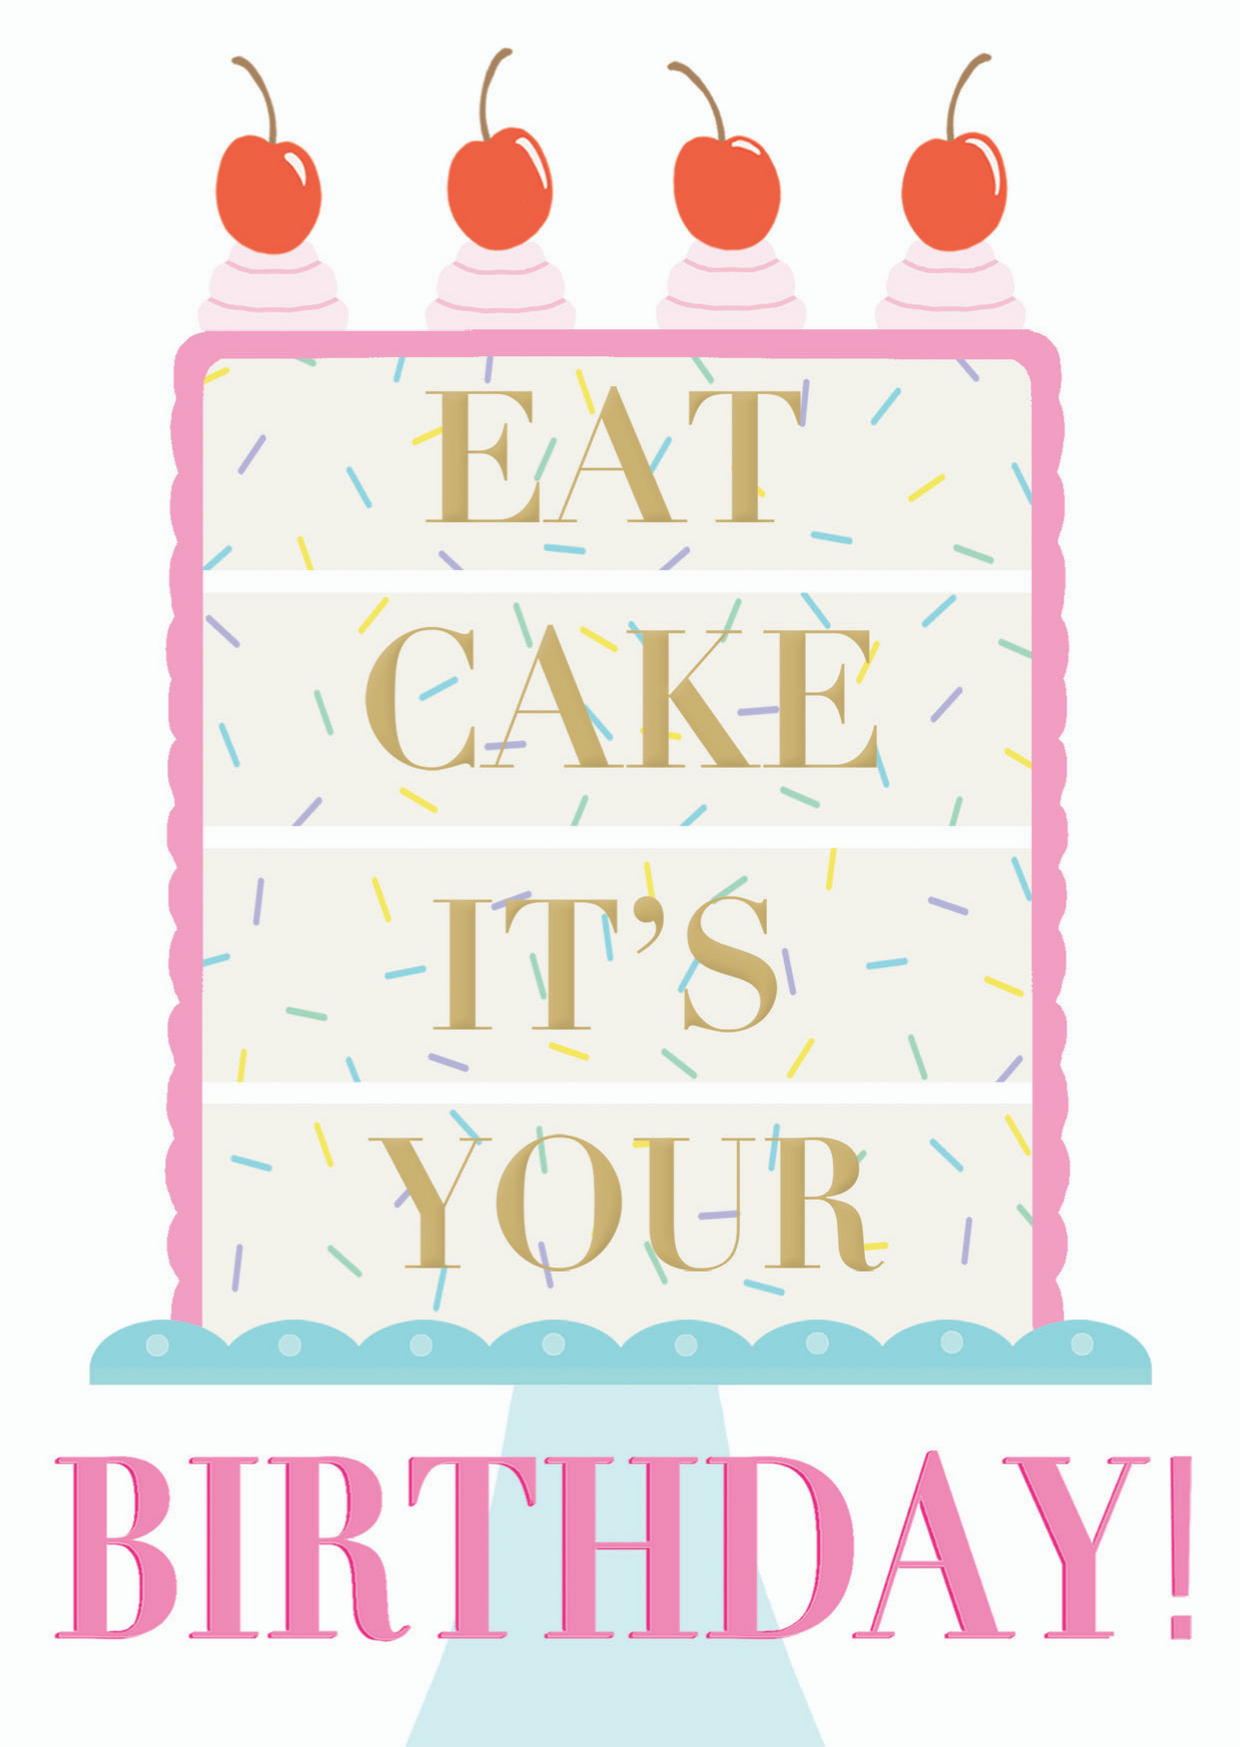 Eat Cake It's Your Birthday - Lily James Designs